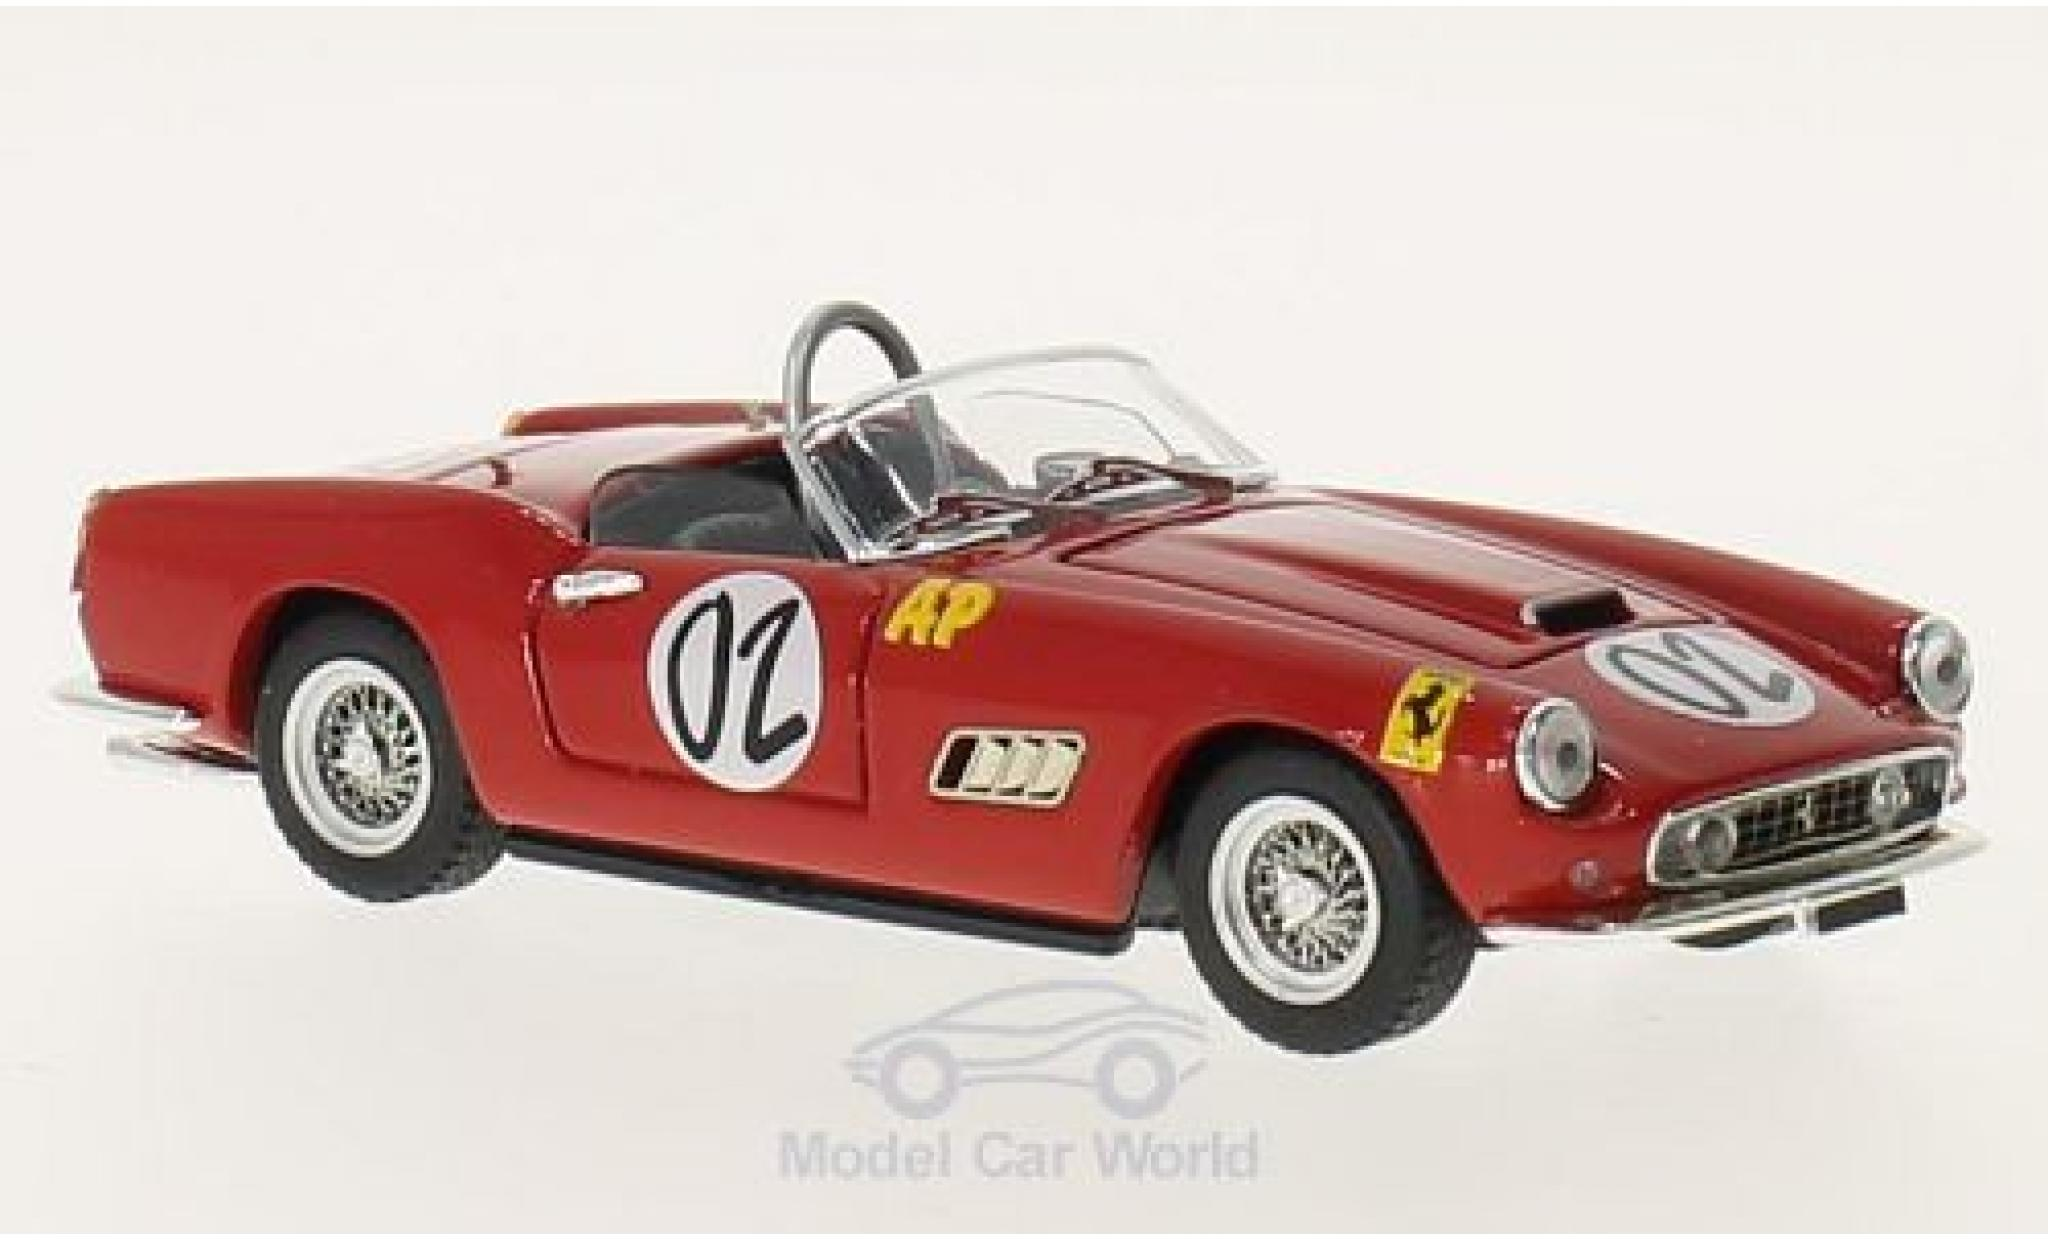 Ferrari 250 1/43 Art Model California No.2 2h Relay Marlboro 1961 Chassis 1085 A.Wylie